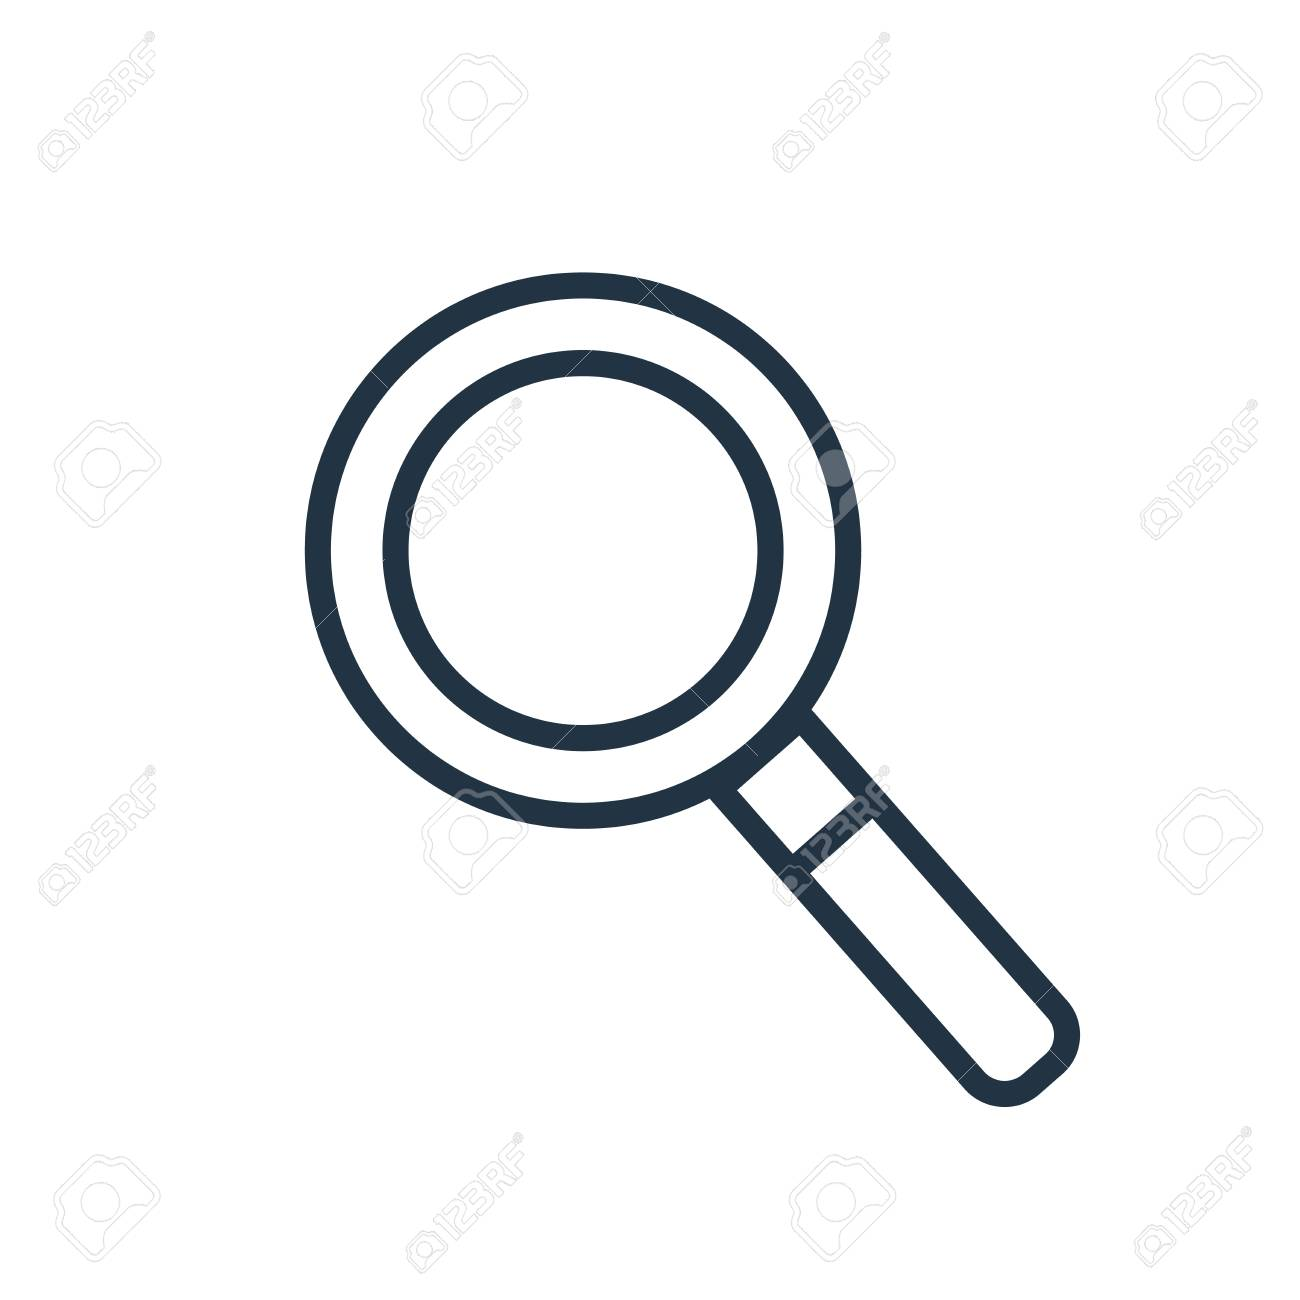 Magnifying glass icon vector isolated on white background, Magnifying glass transparent sign - 111604599